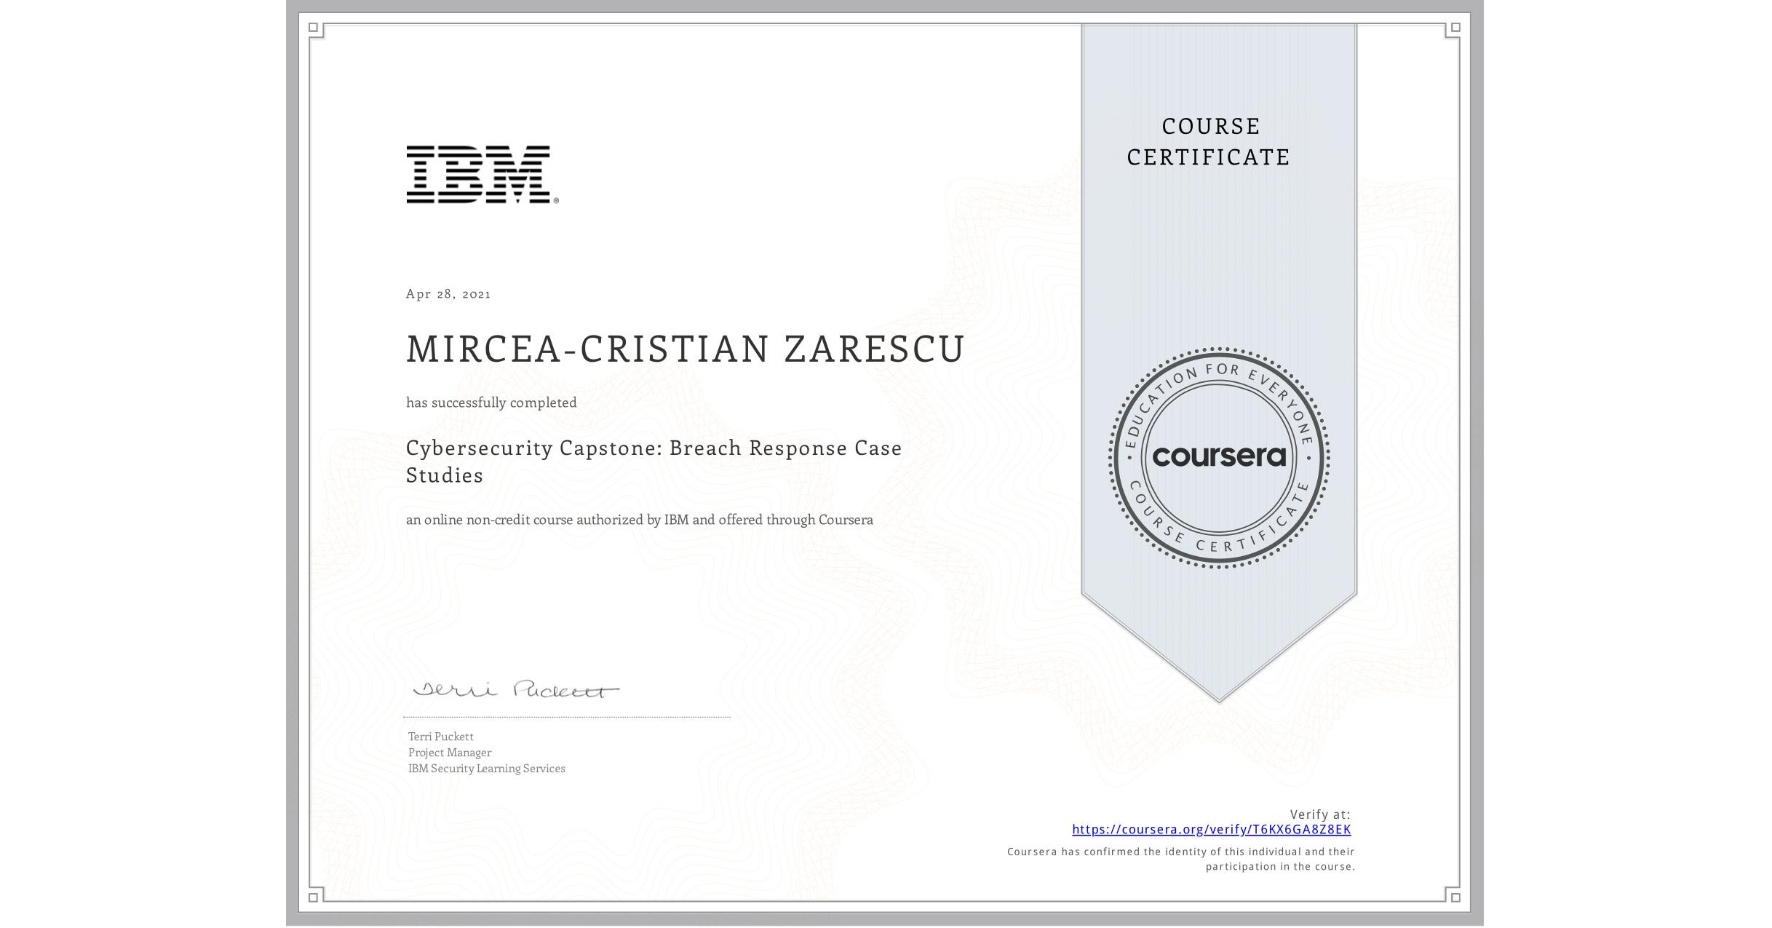 View certificate for MIRCEA-CRISTIAN ZARESCU, Cybersecurity Capstone:  Breach Response Case Studies, an online non-credit course authorized by IBM and offered through Coursera